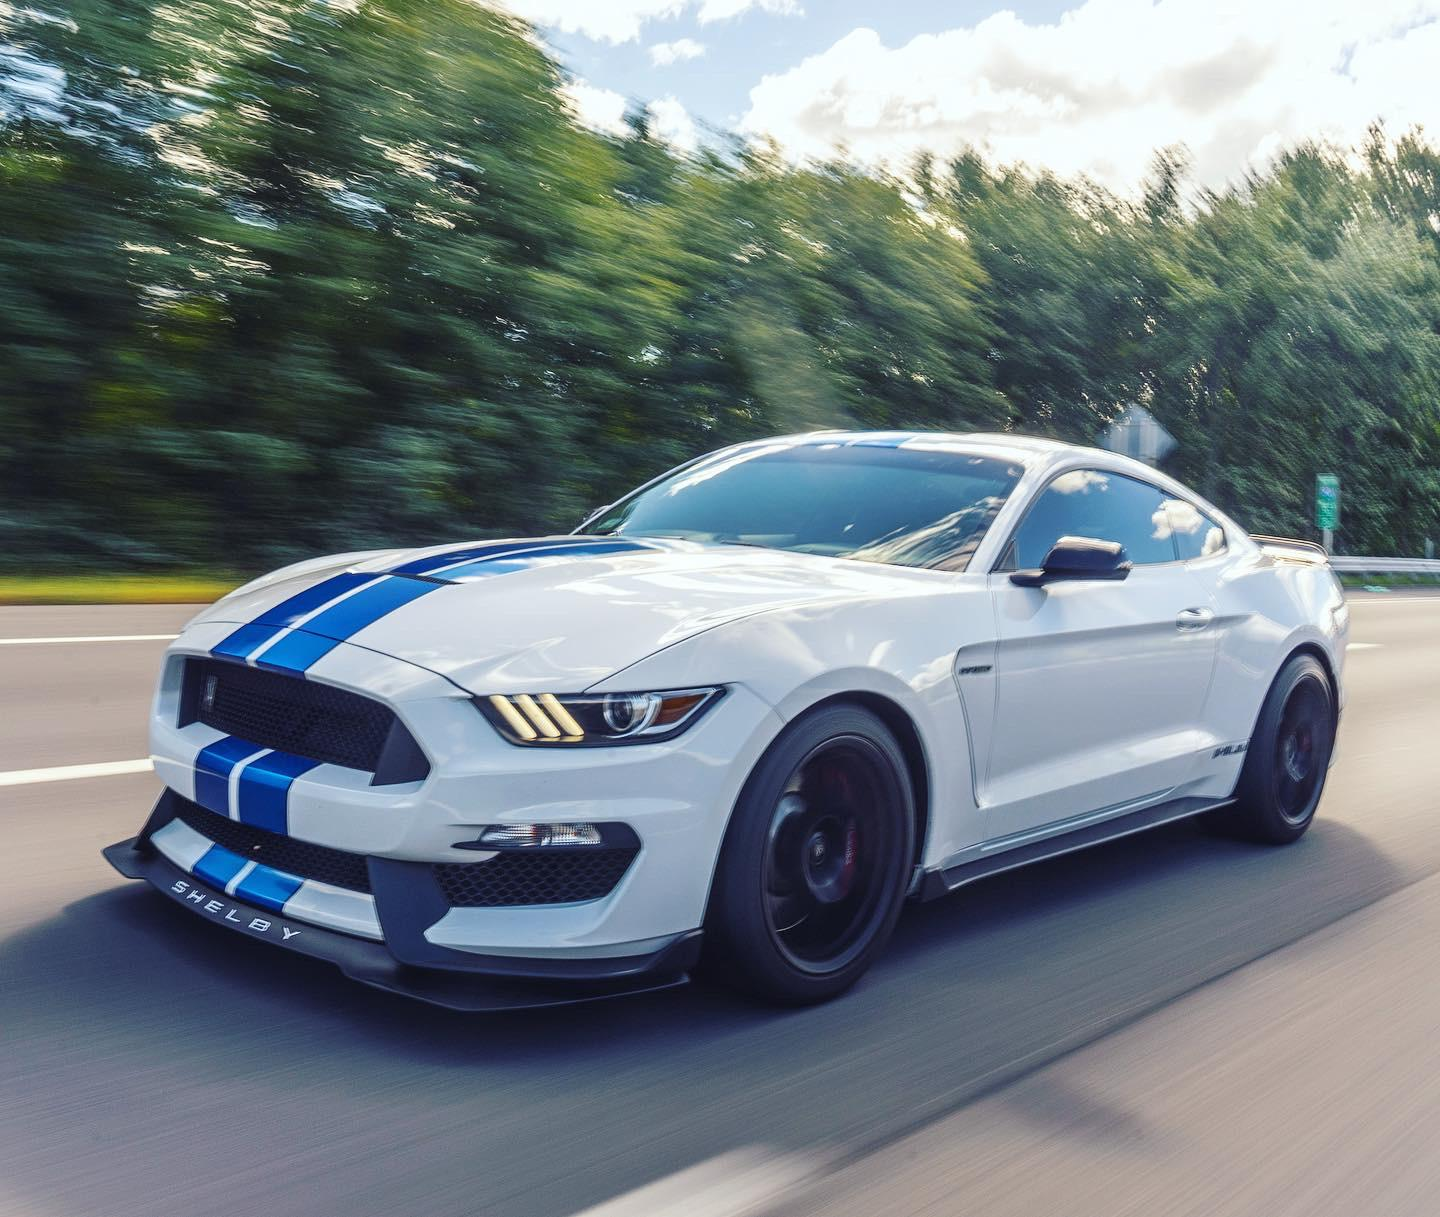 2018 GT350 Rolling shot from this summer [OS]